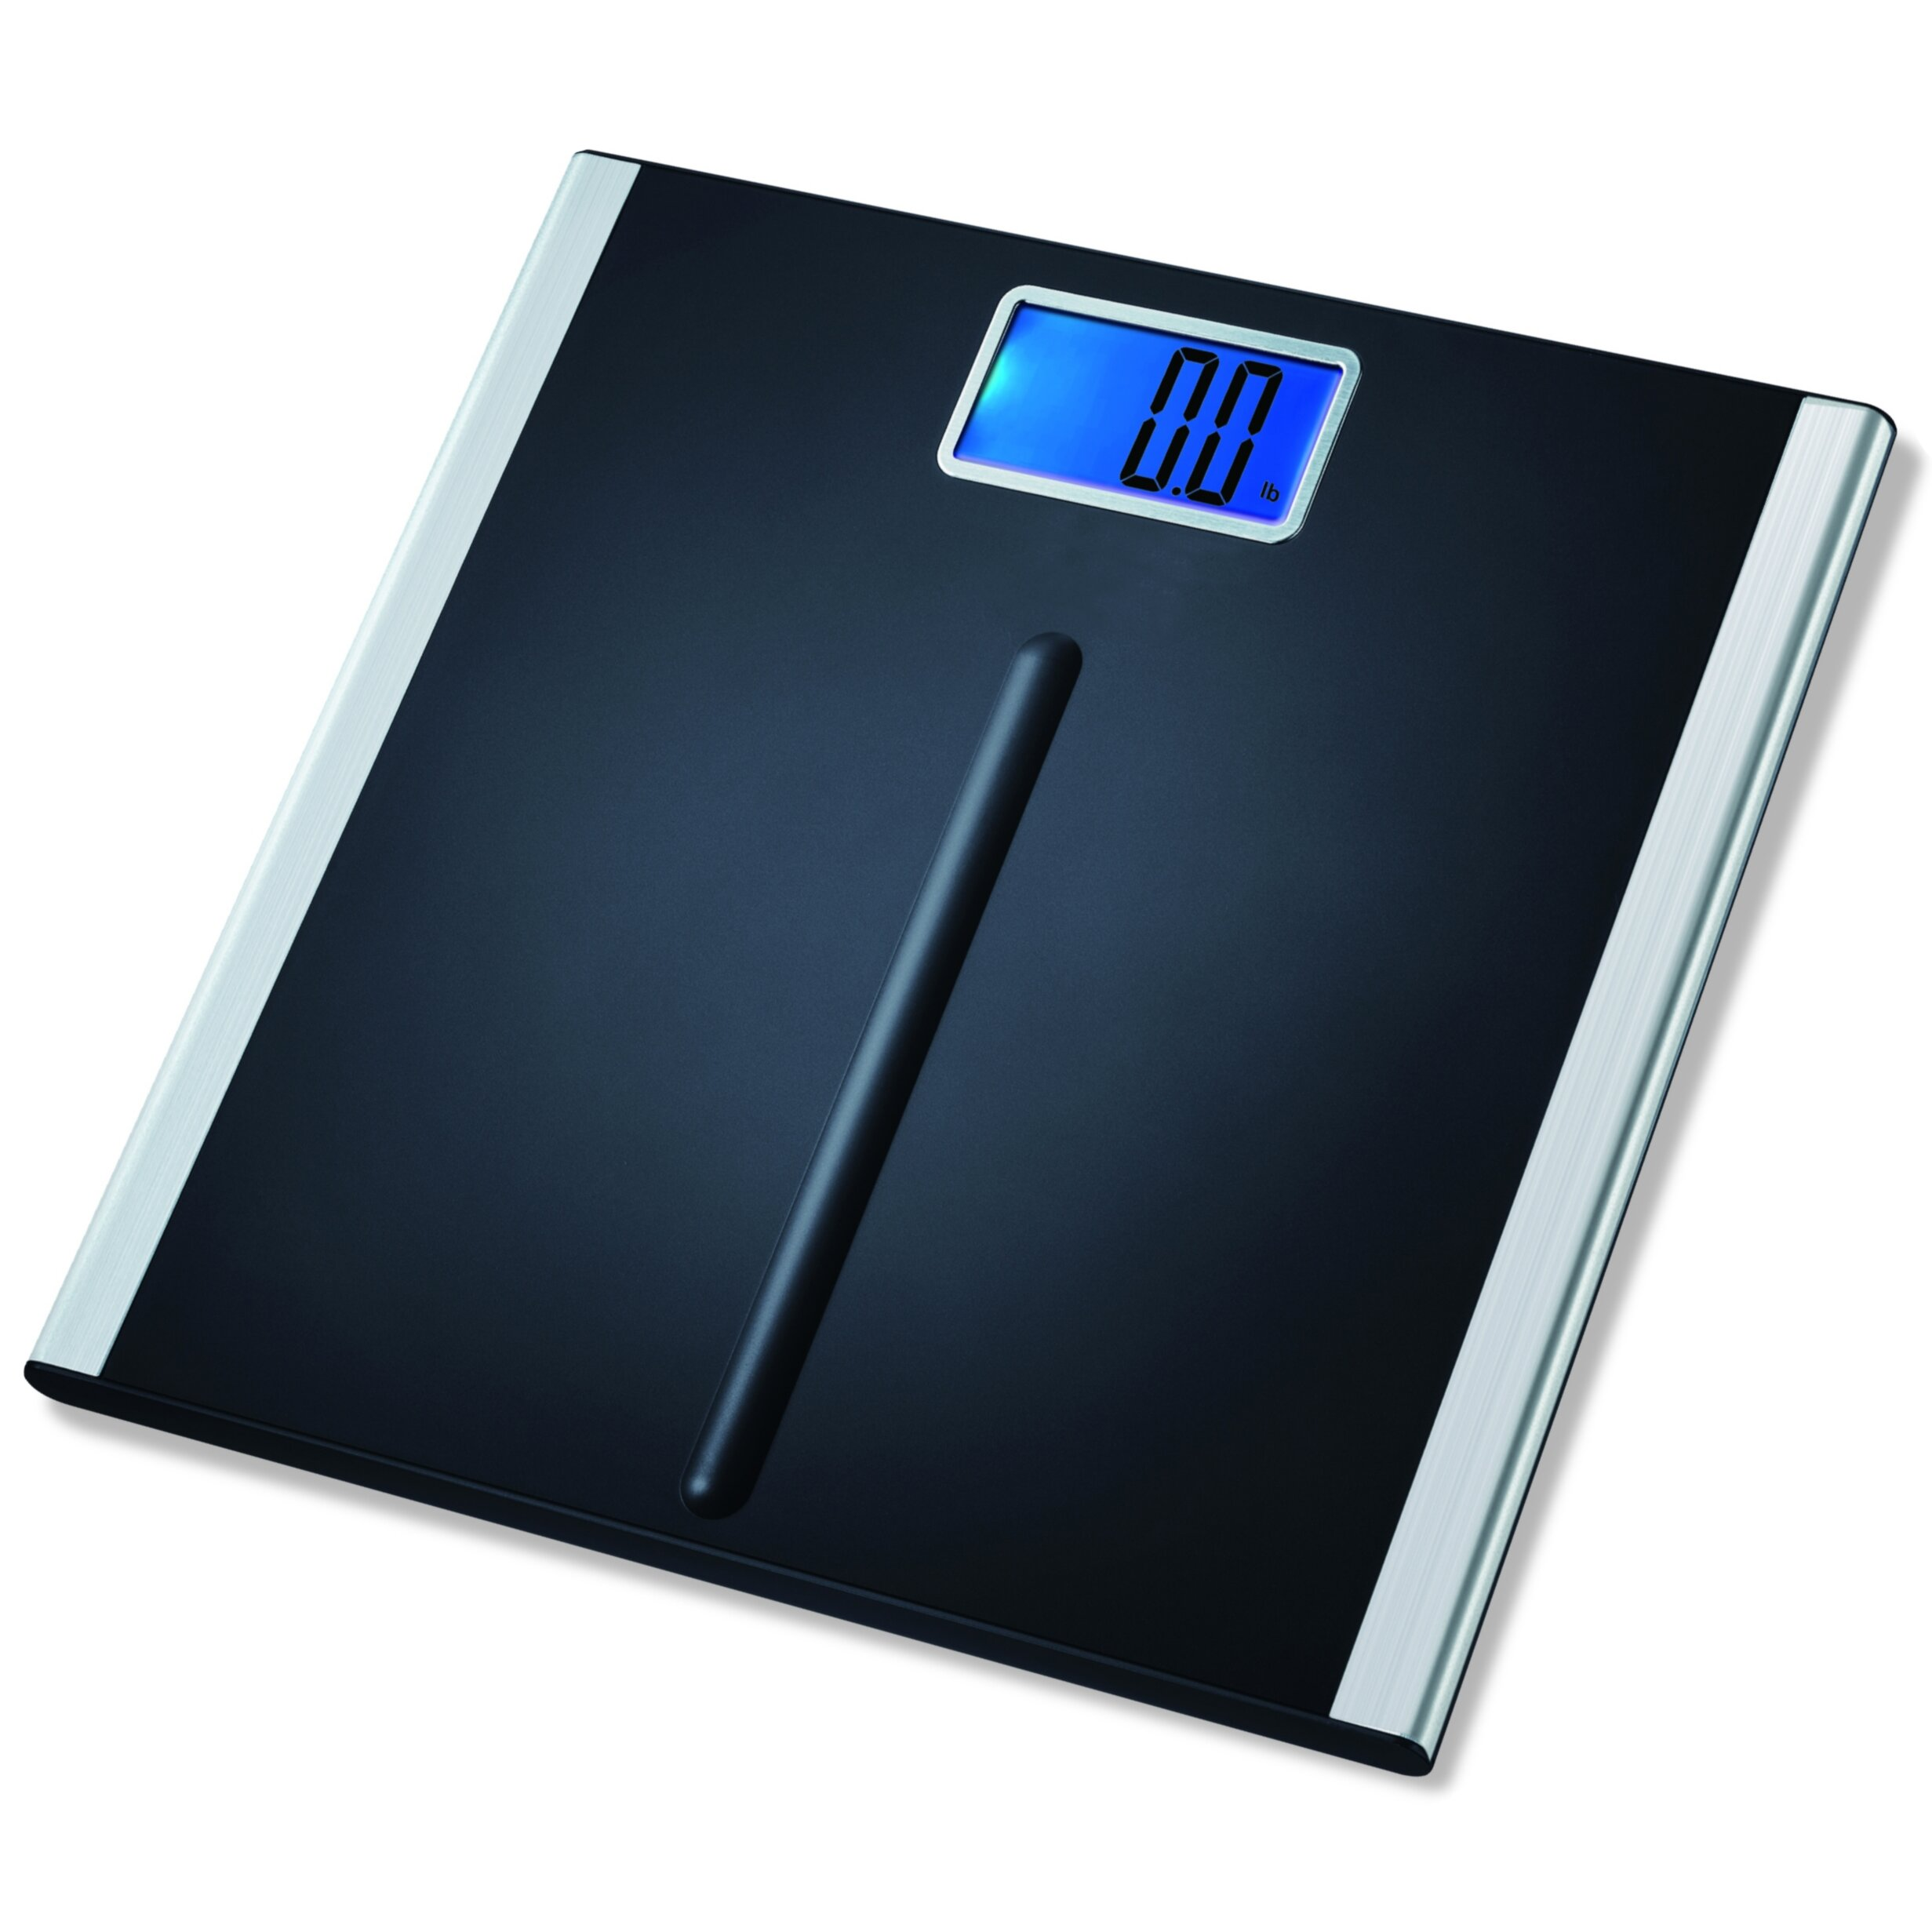 EatSmart Precision Premium Digital Bathroom Scale in Black. Digital Bathroom Scale Reviews